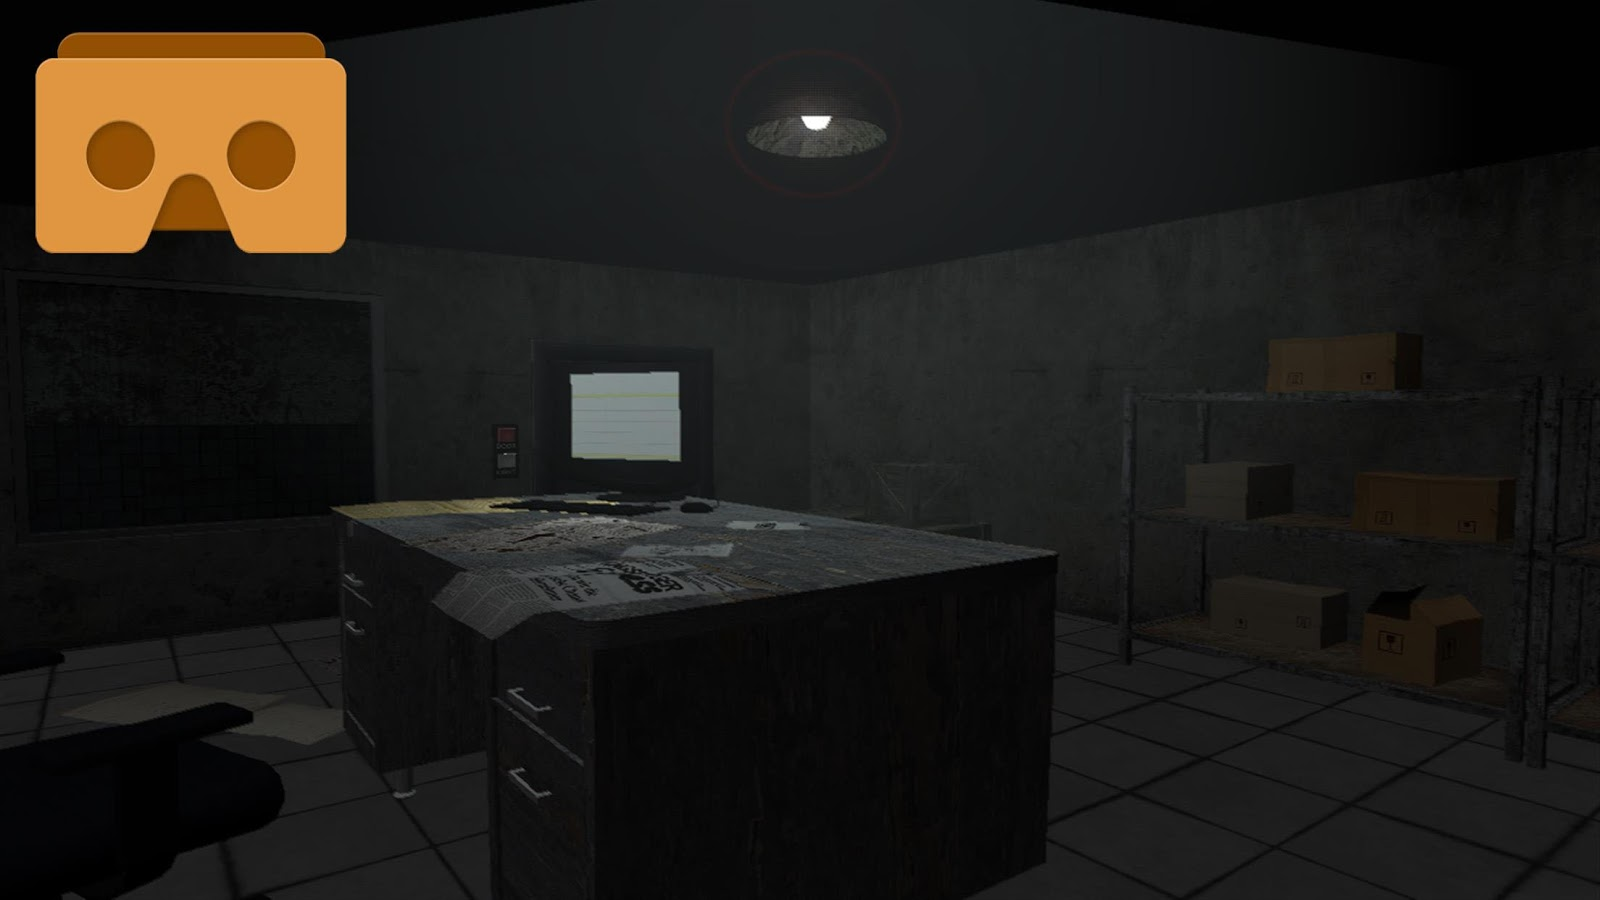 Vr scary house 3d android apps on google play for Vr house